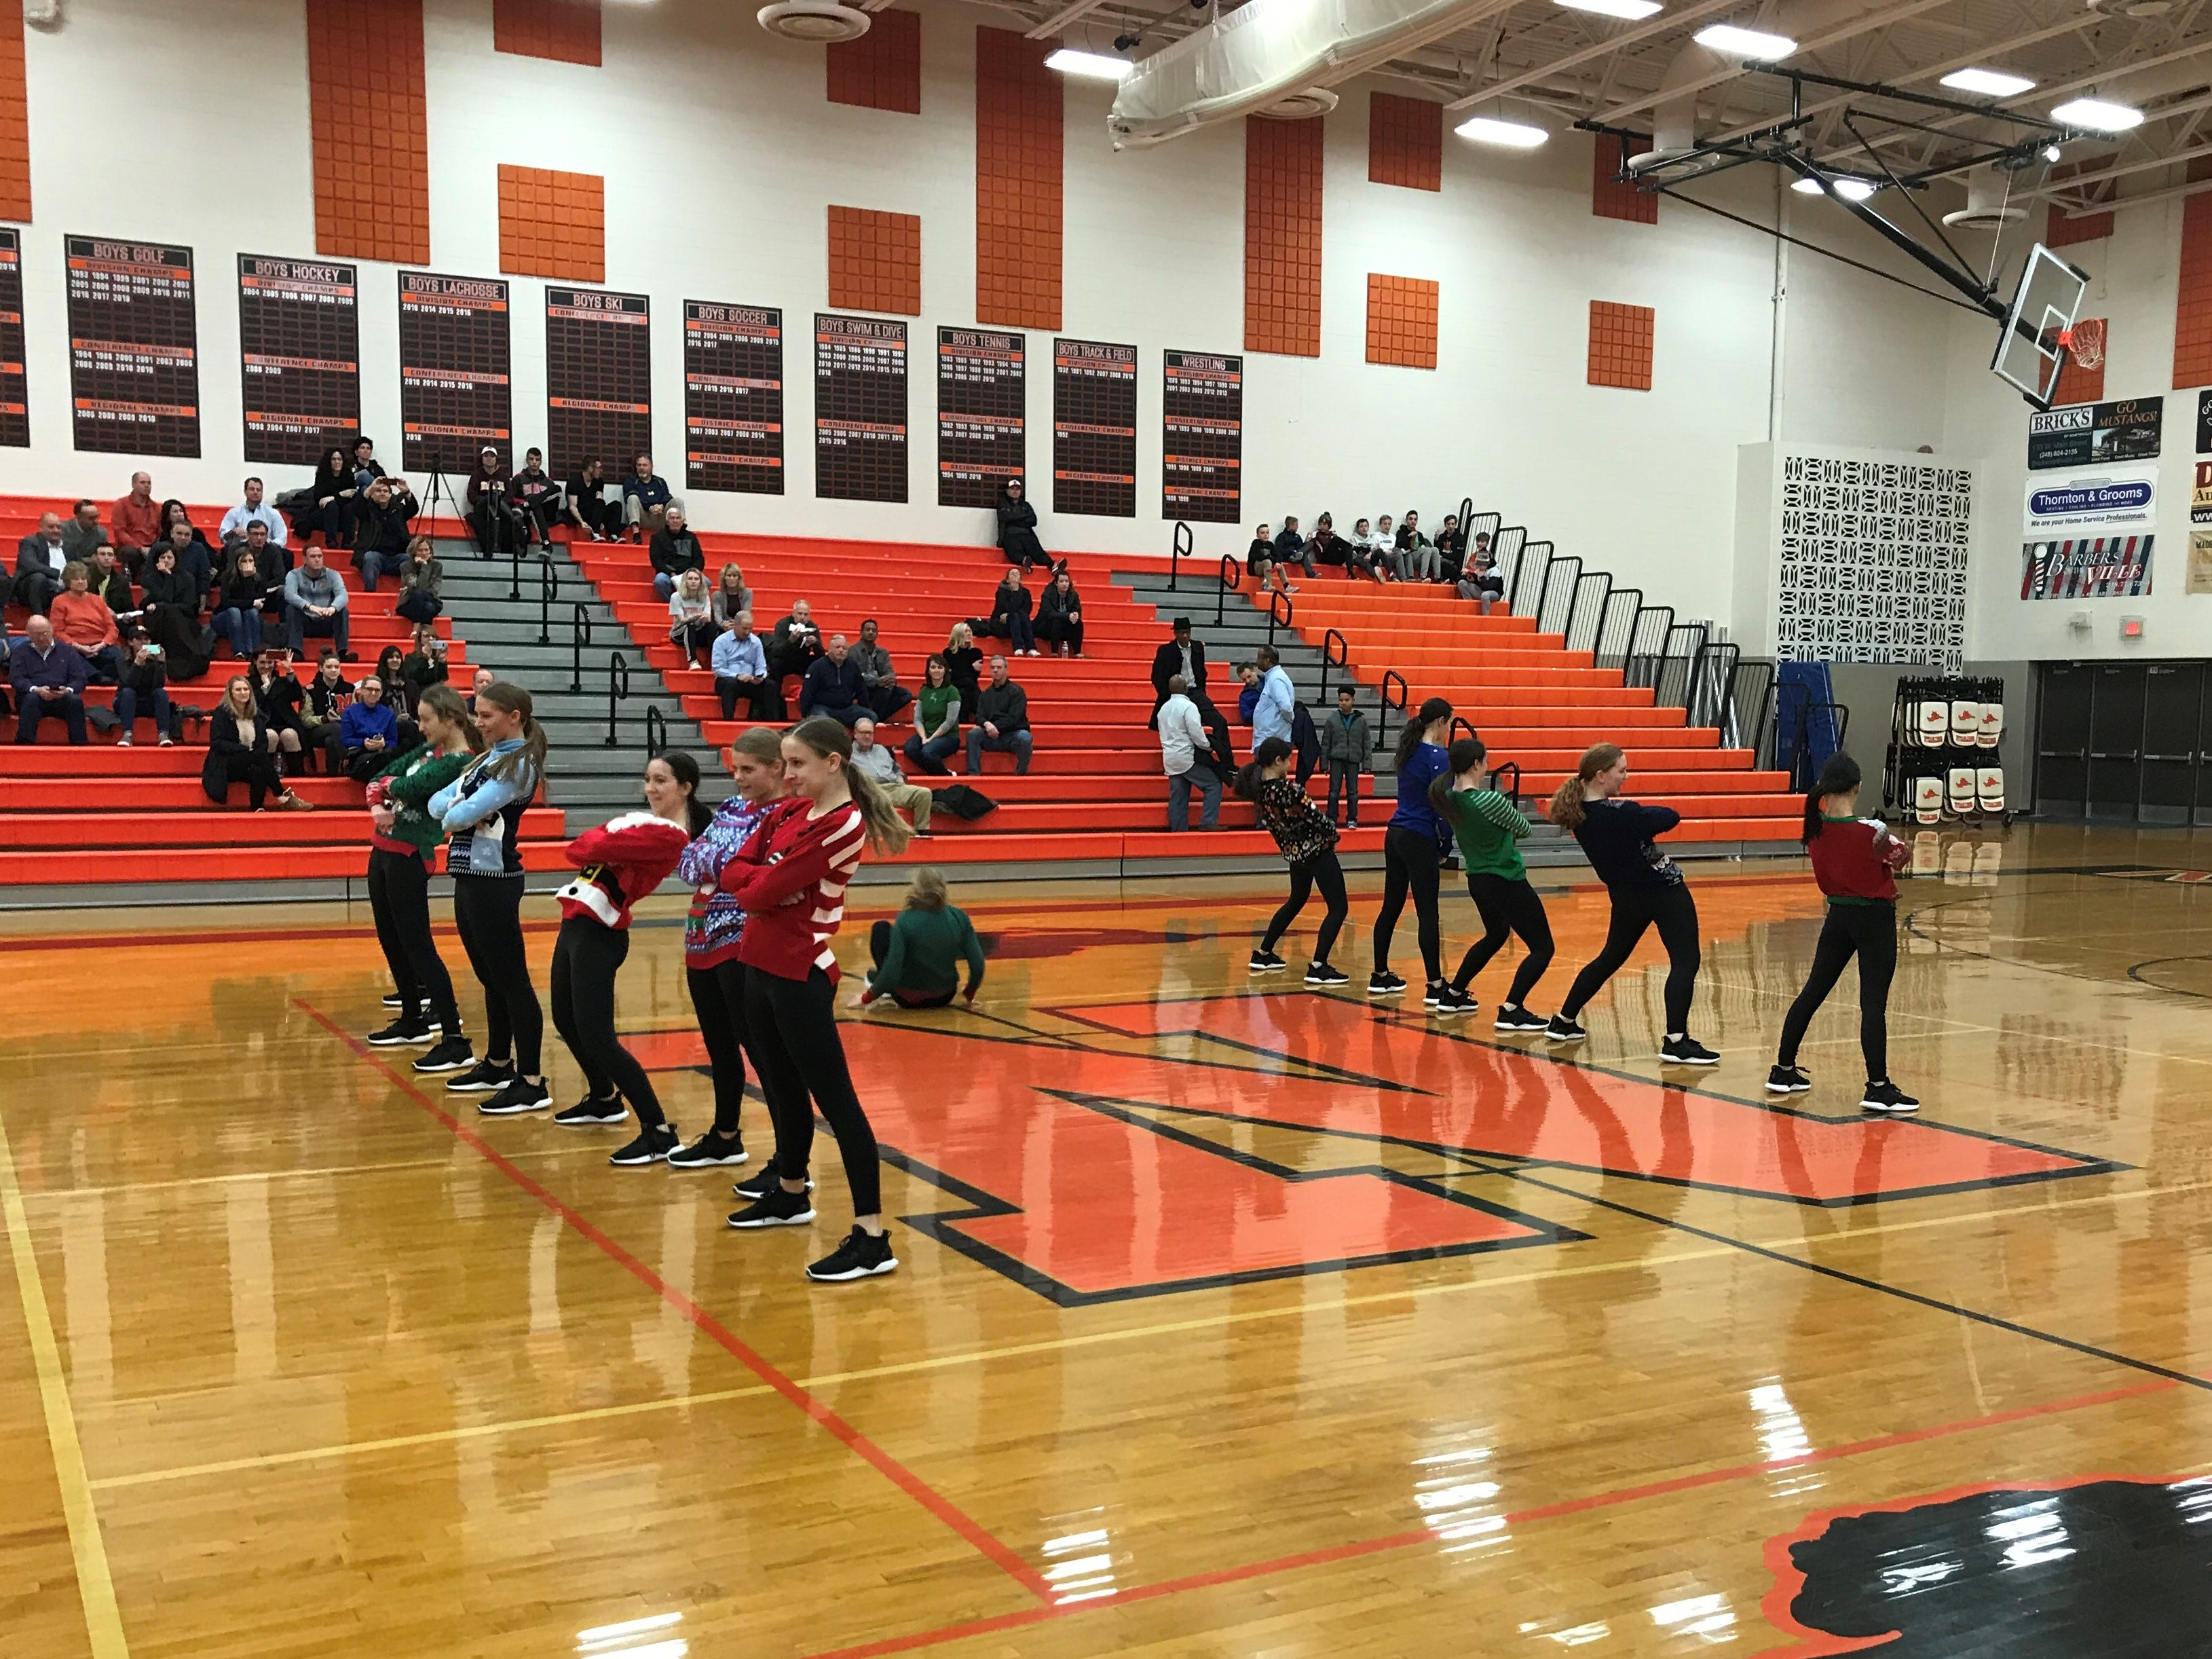 Halftime featured Northville cheerleaders displaying their 'ugly Christmas sweaters' as part of their routine.